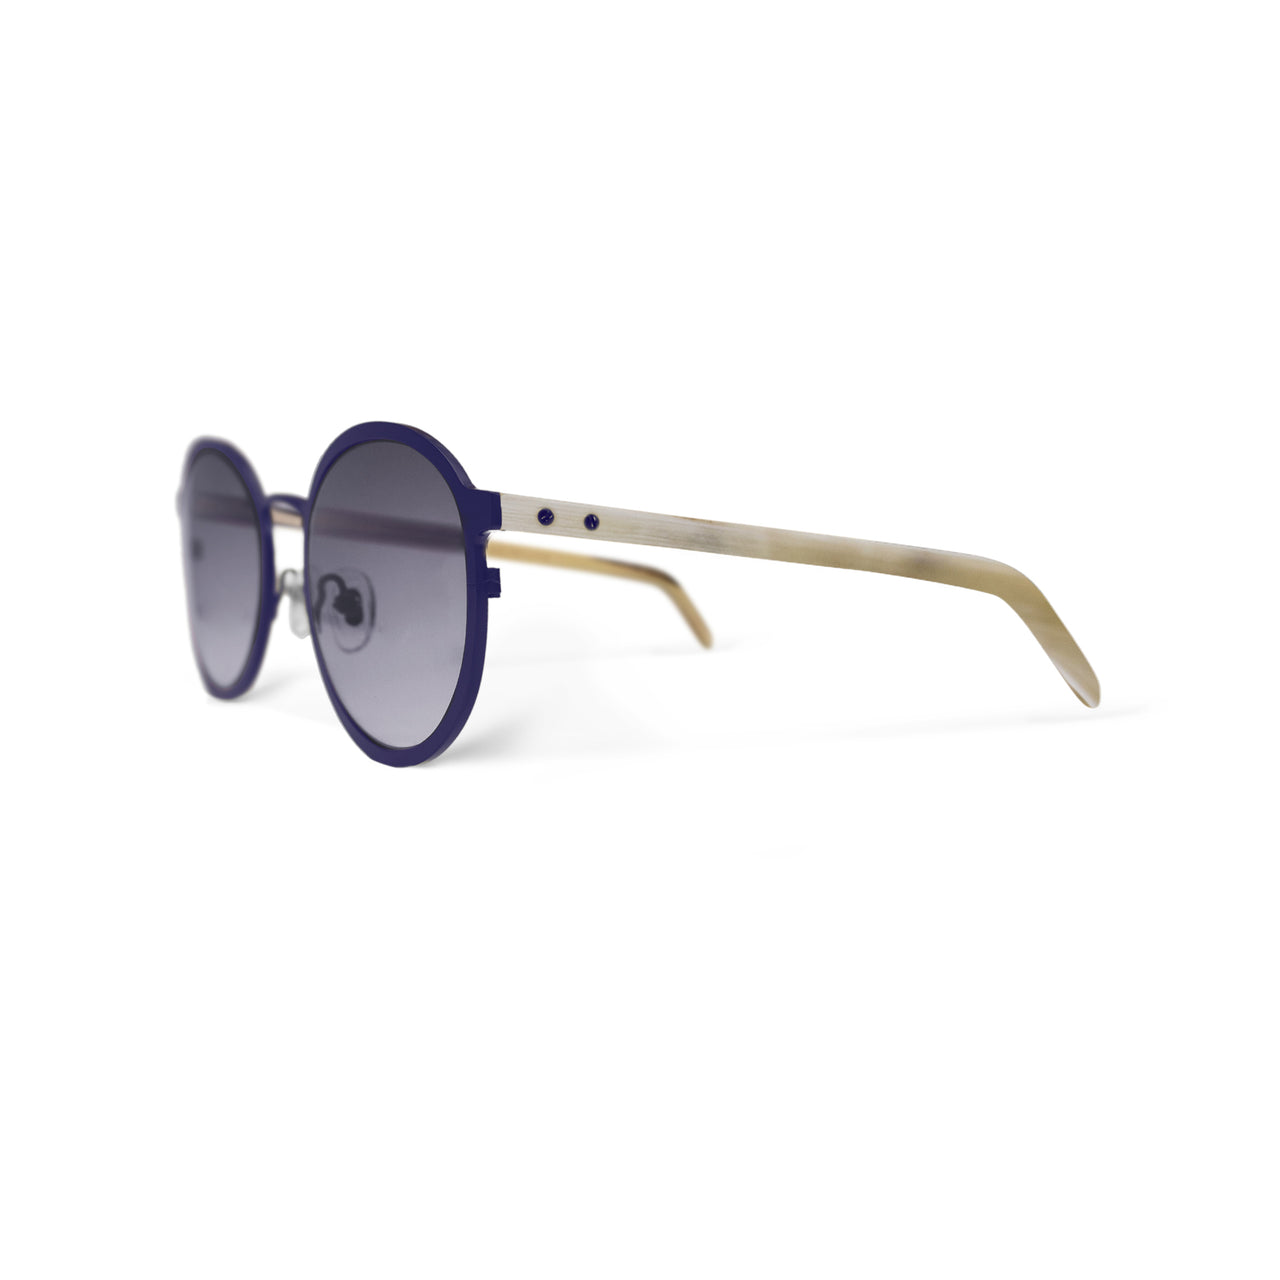 Metal / Horn. Mulberry / Oxen. Smoke Lens. - BLYSZAK eyewear eyewear - eyewear, optical, sunglasses